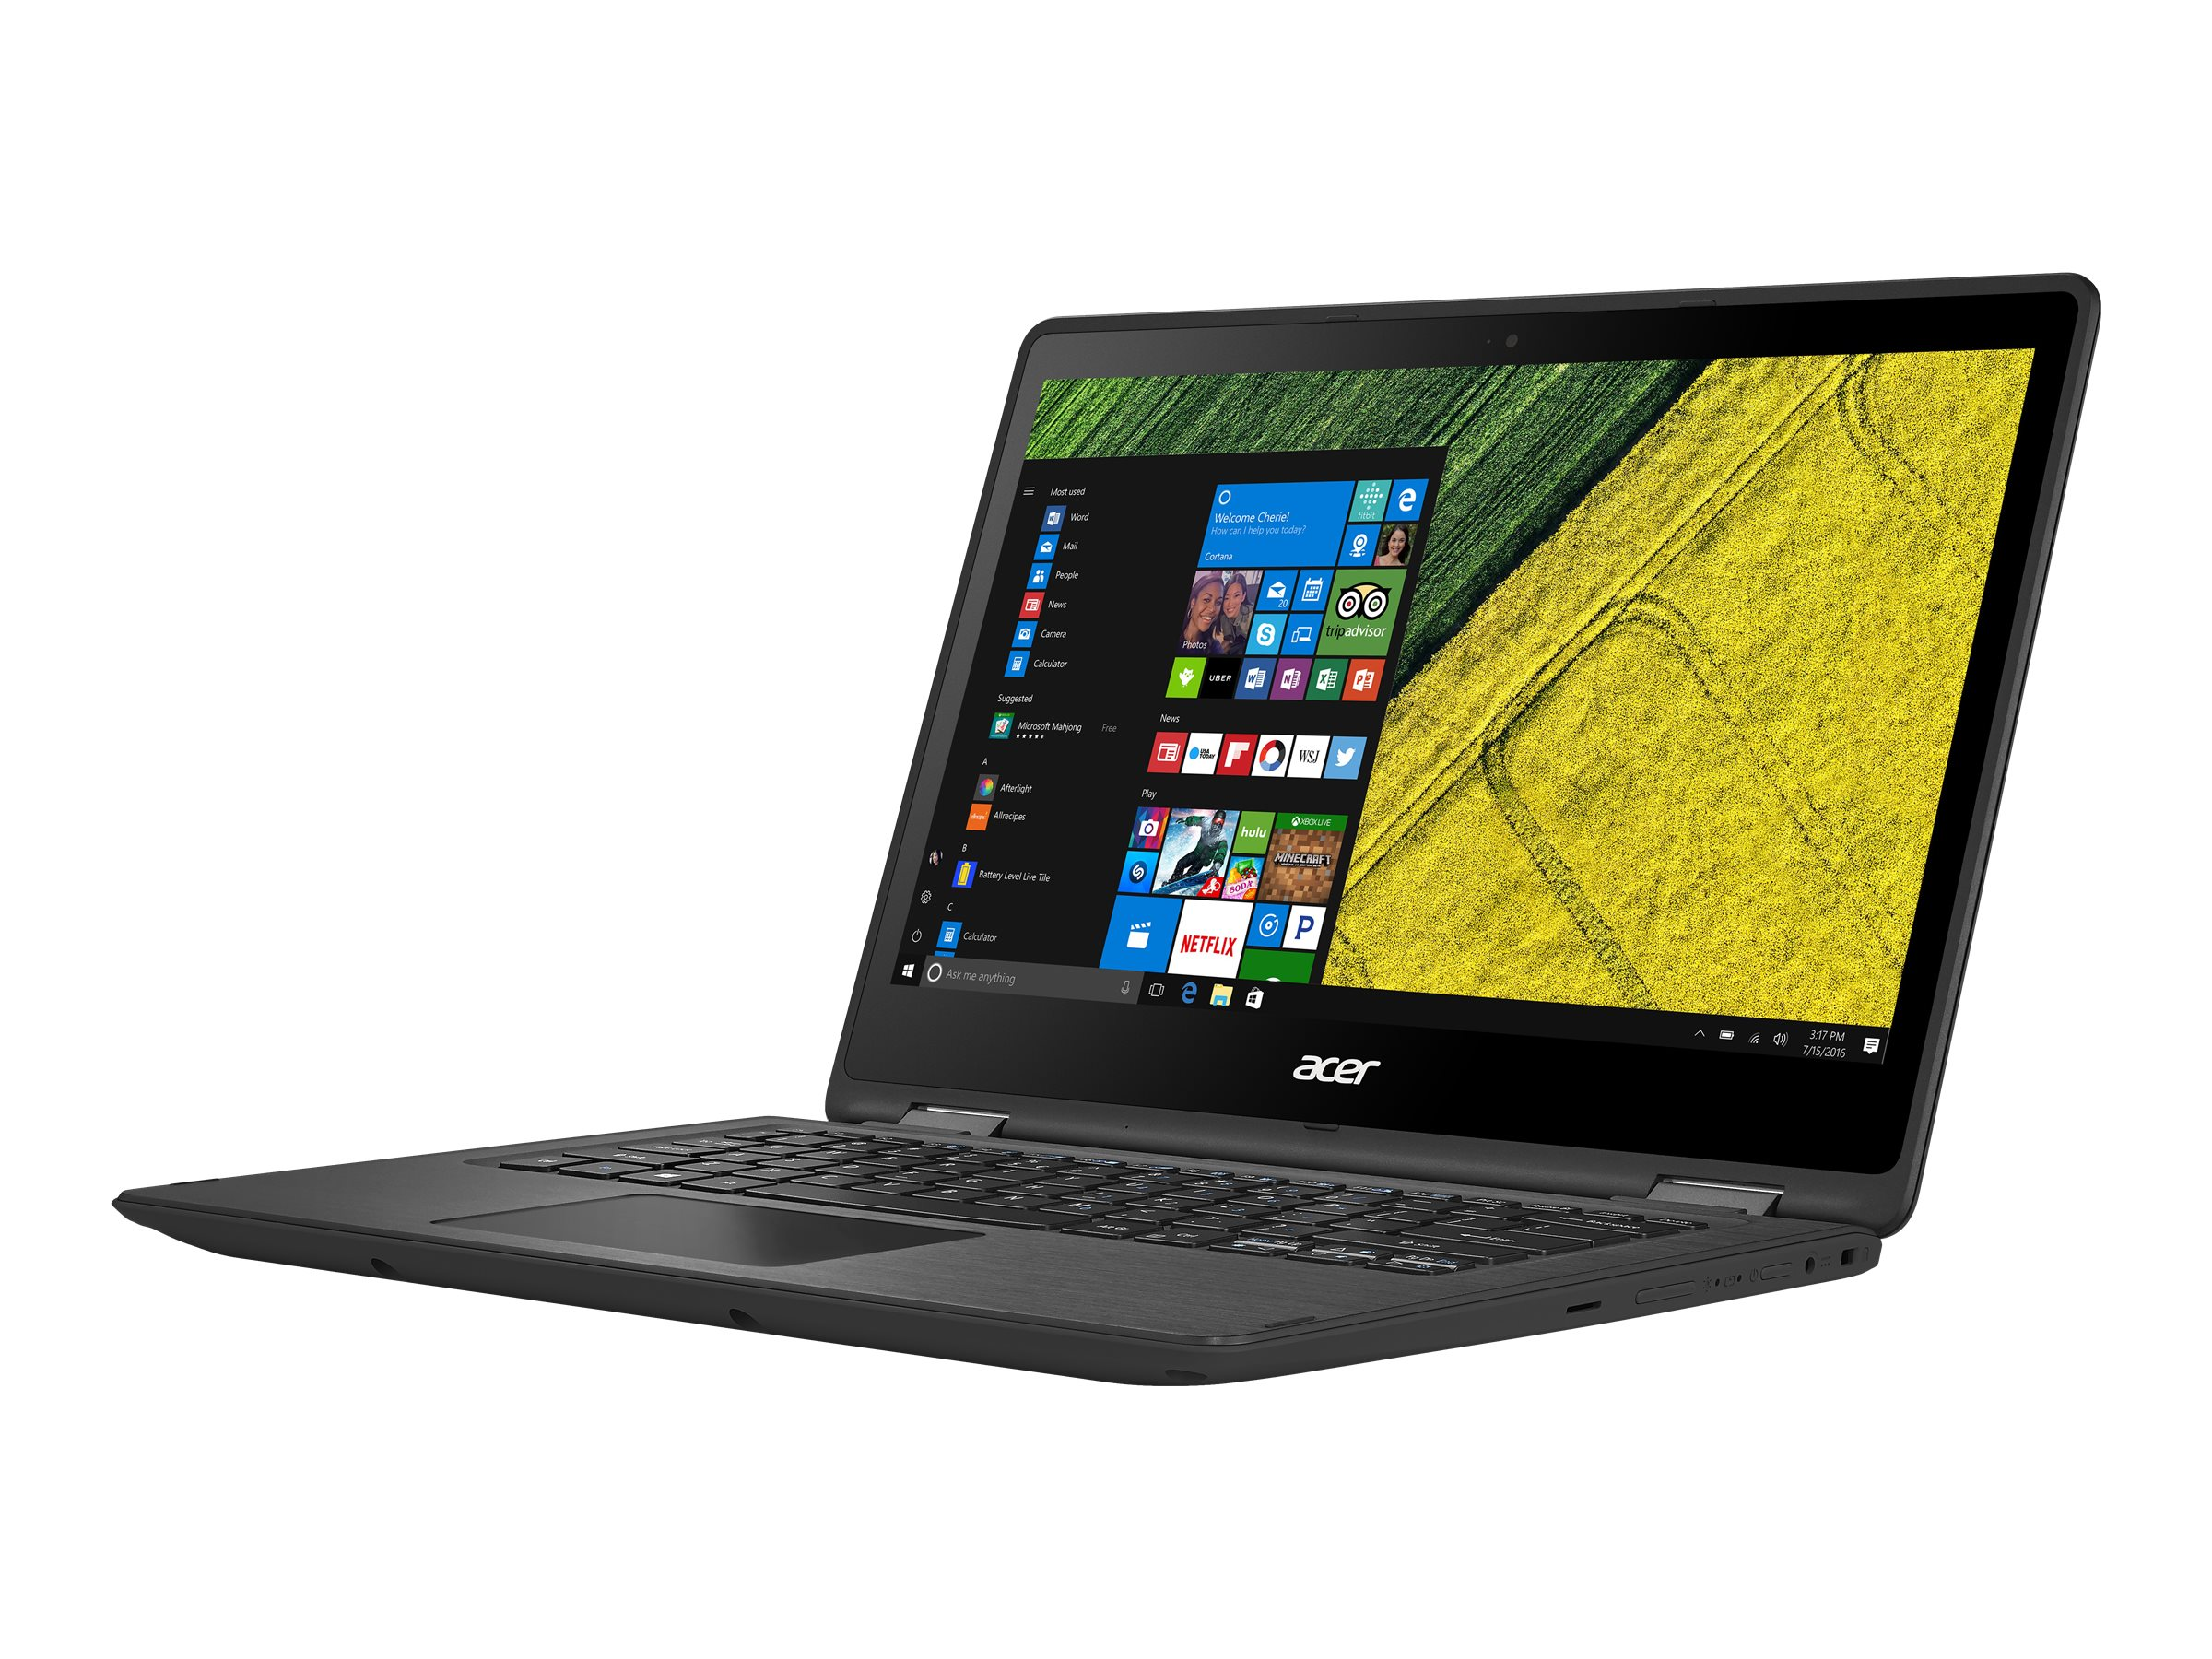 Acer Spin 5 513-51-51VX Core i5-7200U 2.5GHz 8GB 256GB SSDac BT WC 4C 13.3 FHD MT W10H64